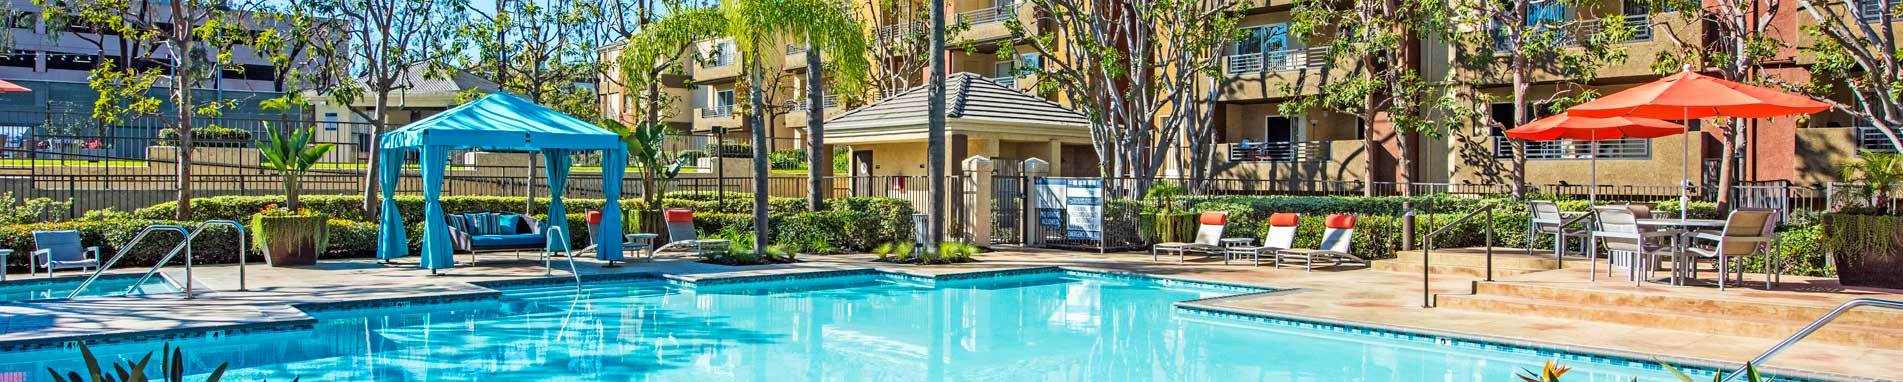 Apartments in Irvine offering